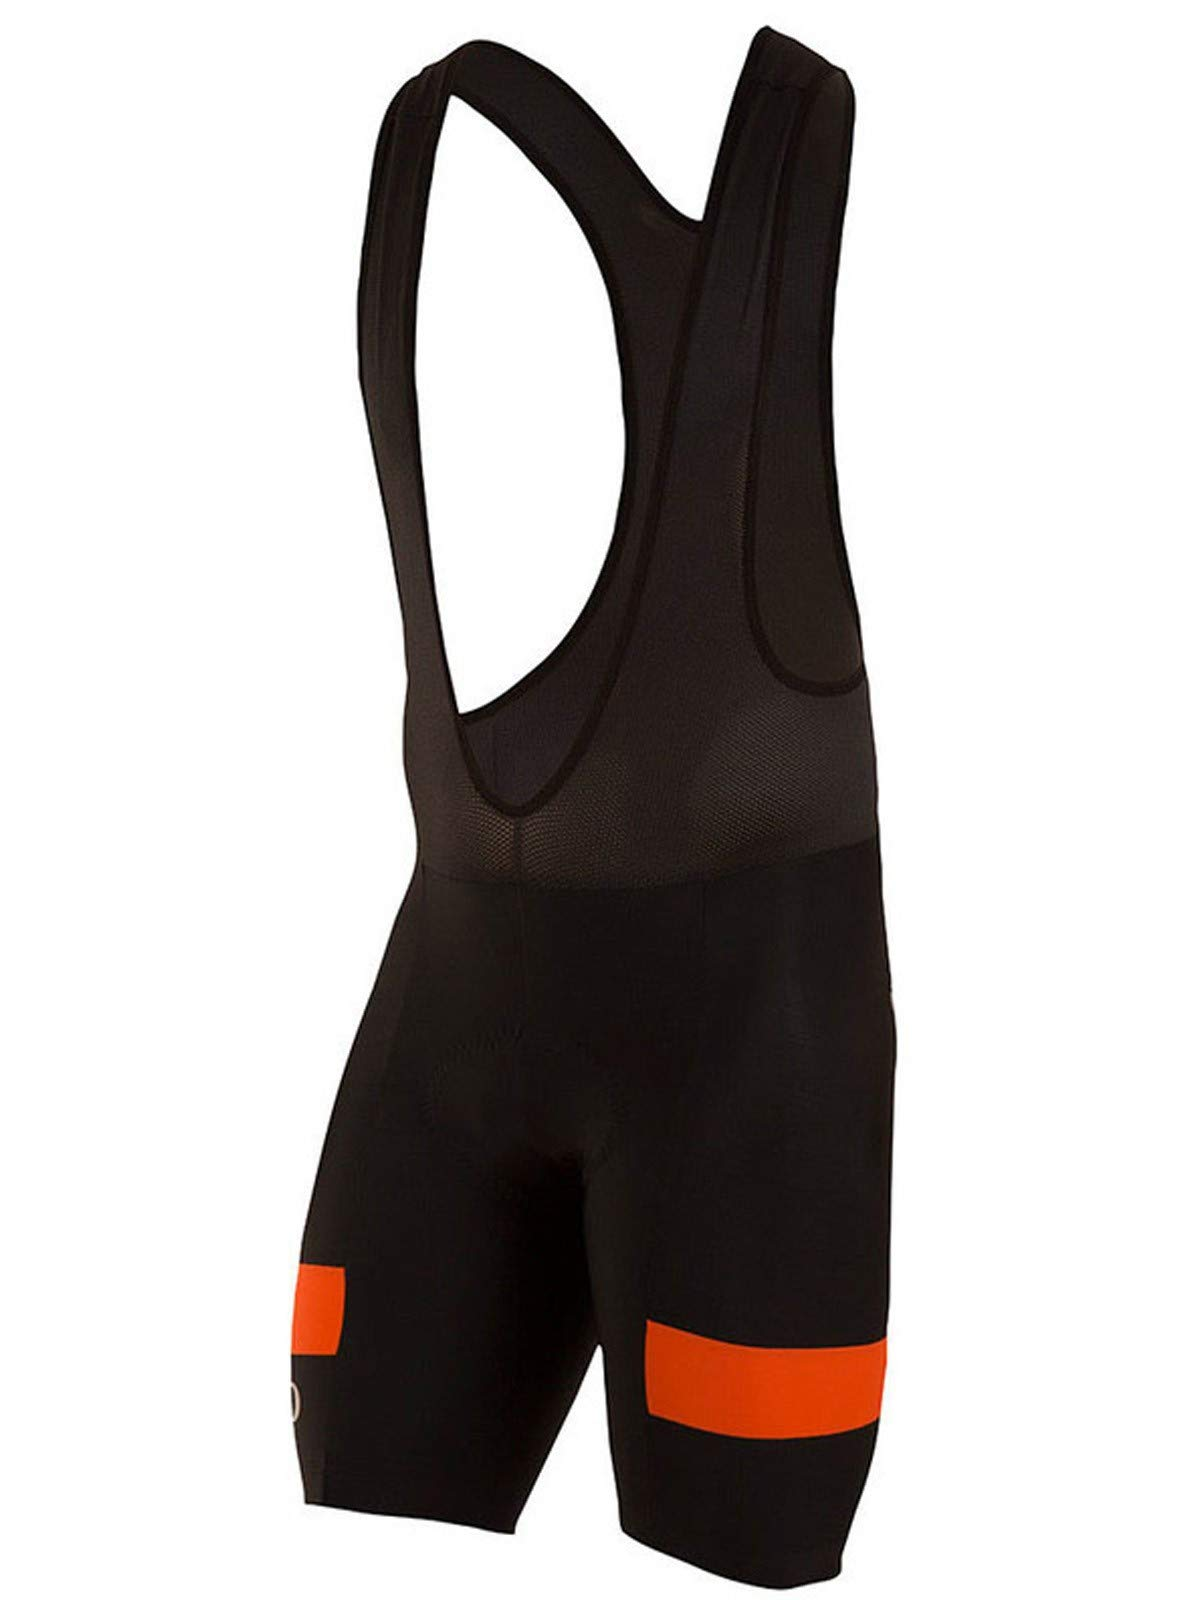 Pearl iZUMi Men's Escape Quest Splice Bib Shorts, Black/Orange Comb, X-Large by Pearl iZUMi (Image #1)